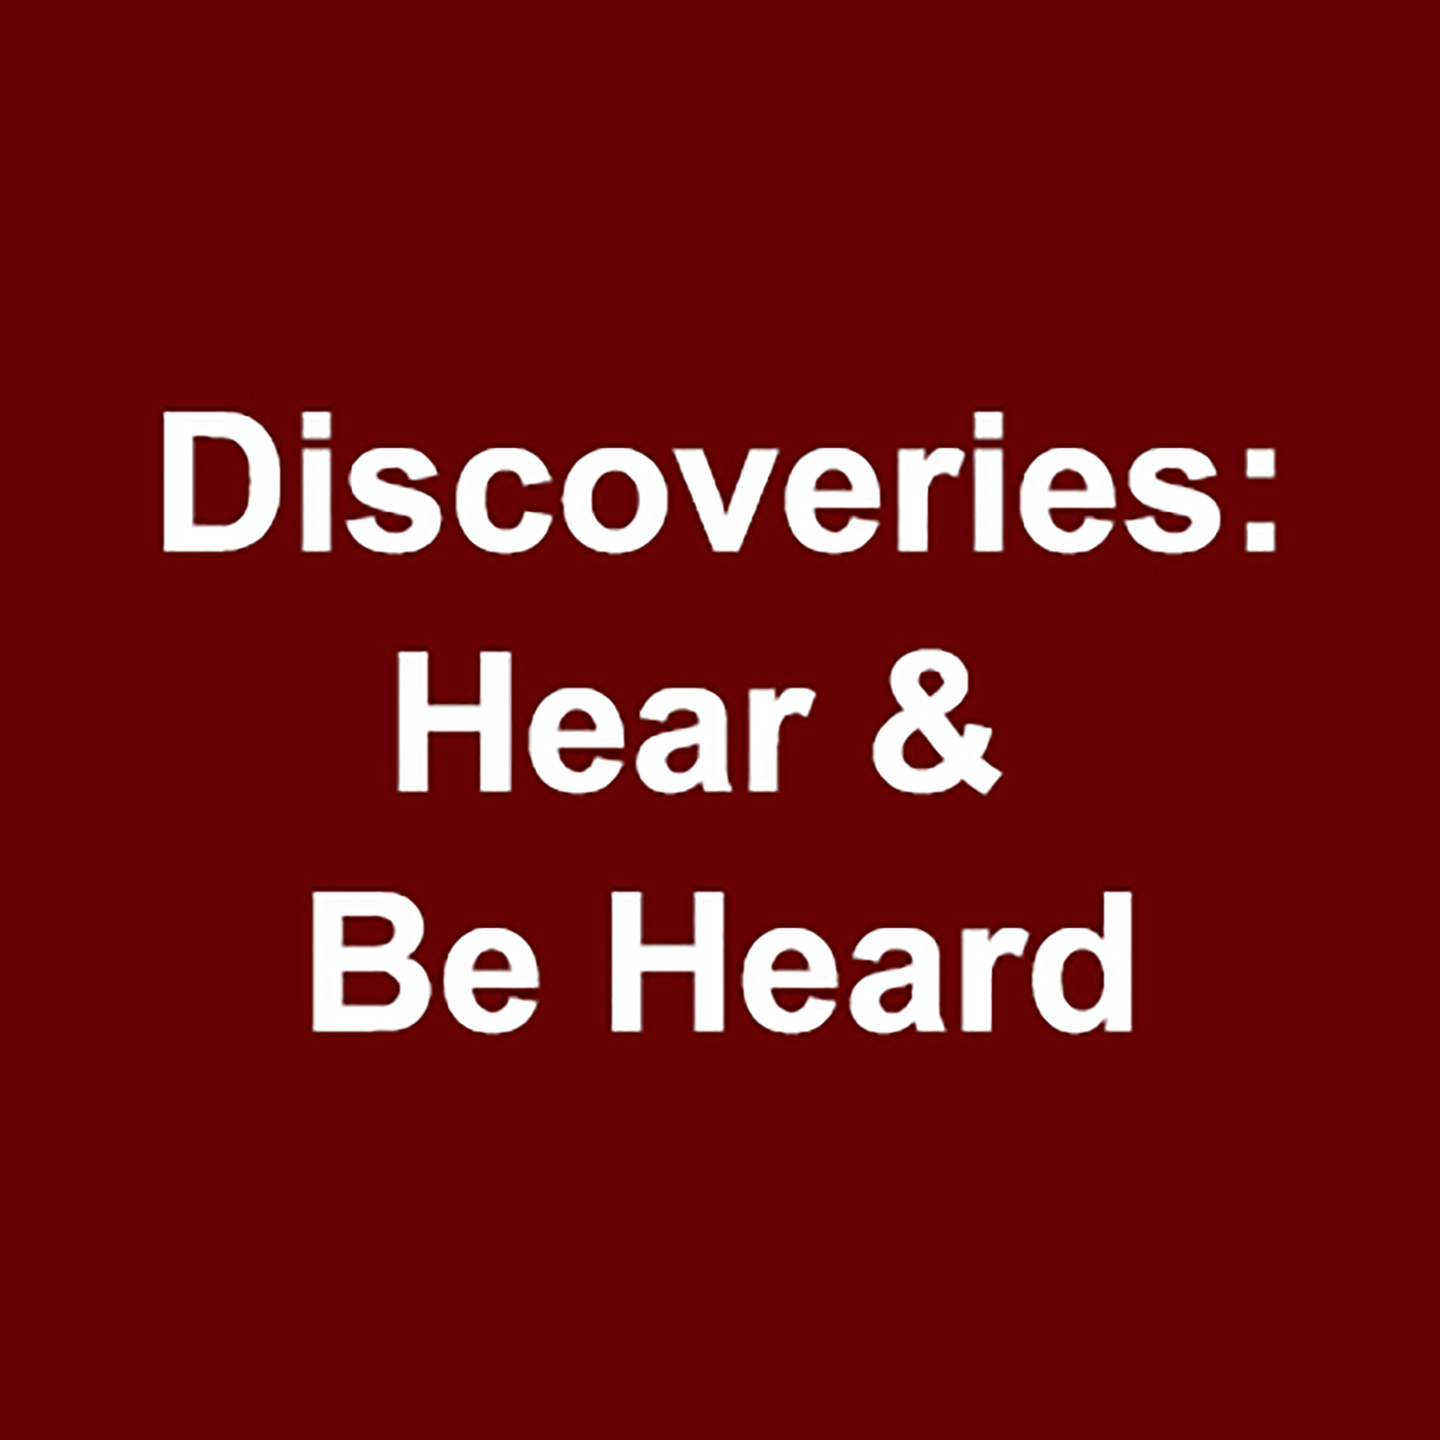 Discoveries: Emerging Composers: University of Chicago student composers